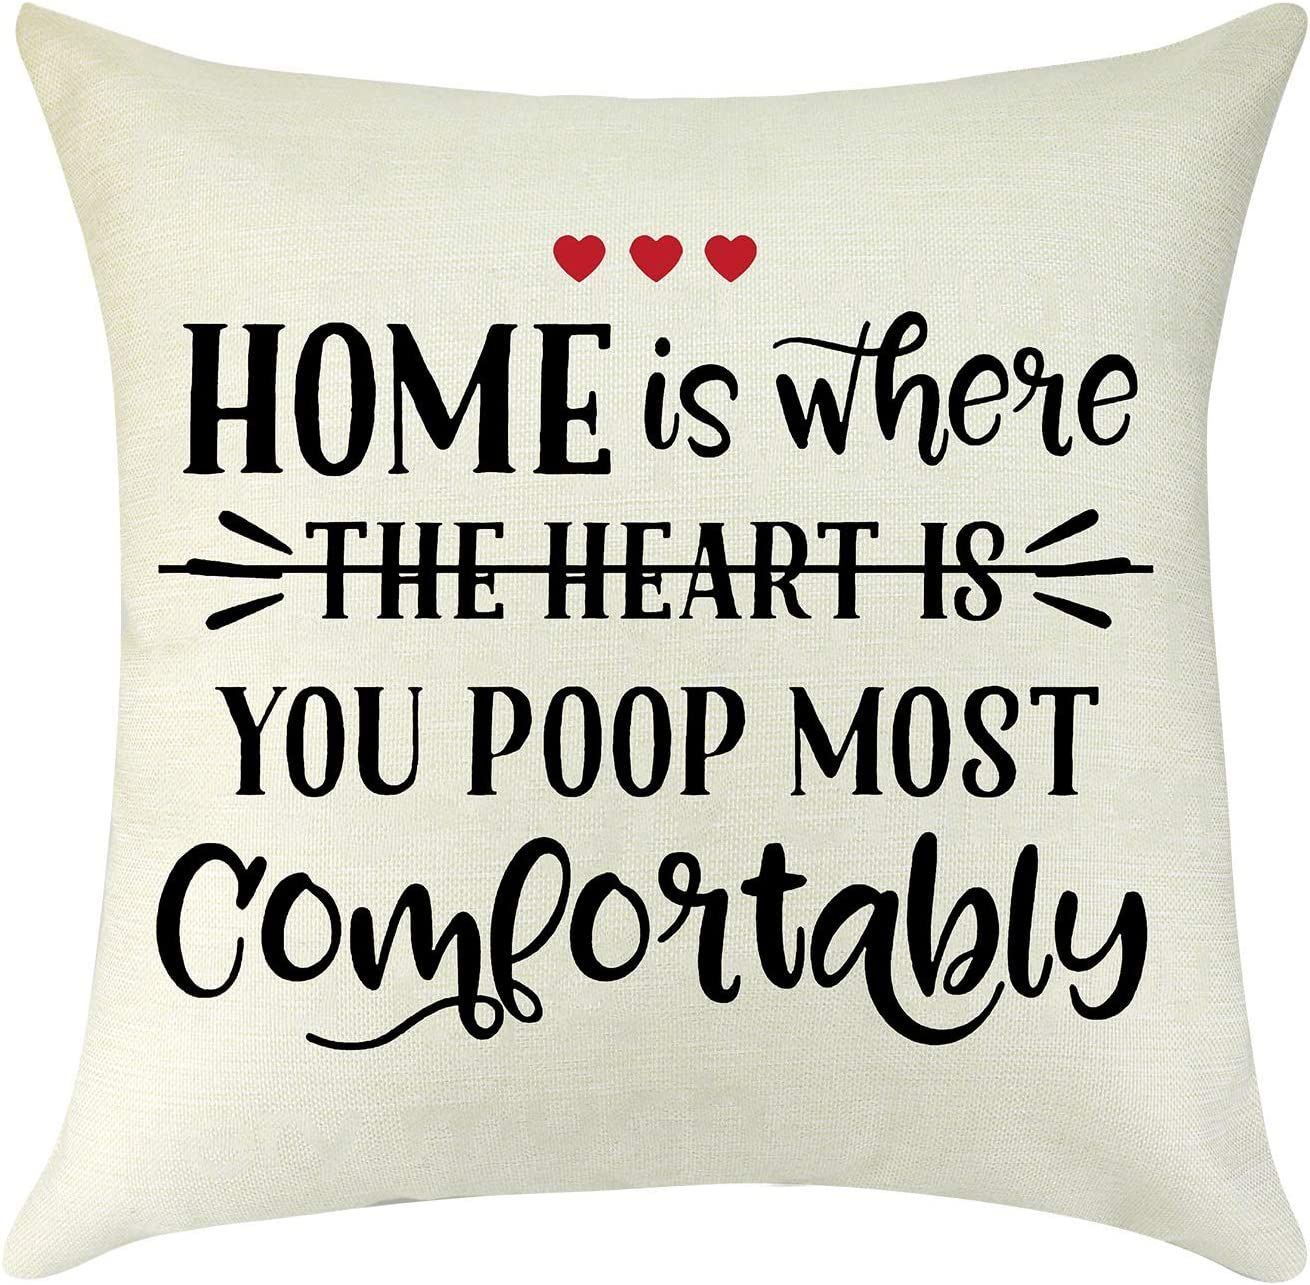 Funny New Home Cotton Linen Square Throw Pillow Covers Housewarming Gift Couples Gift Son Gift Daughter Gift Friend Gift Farmhouse Decor Pillow Case Cushion Cover for Sofa Couch Decorative 18